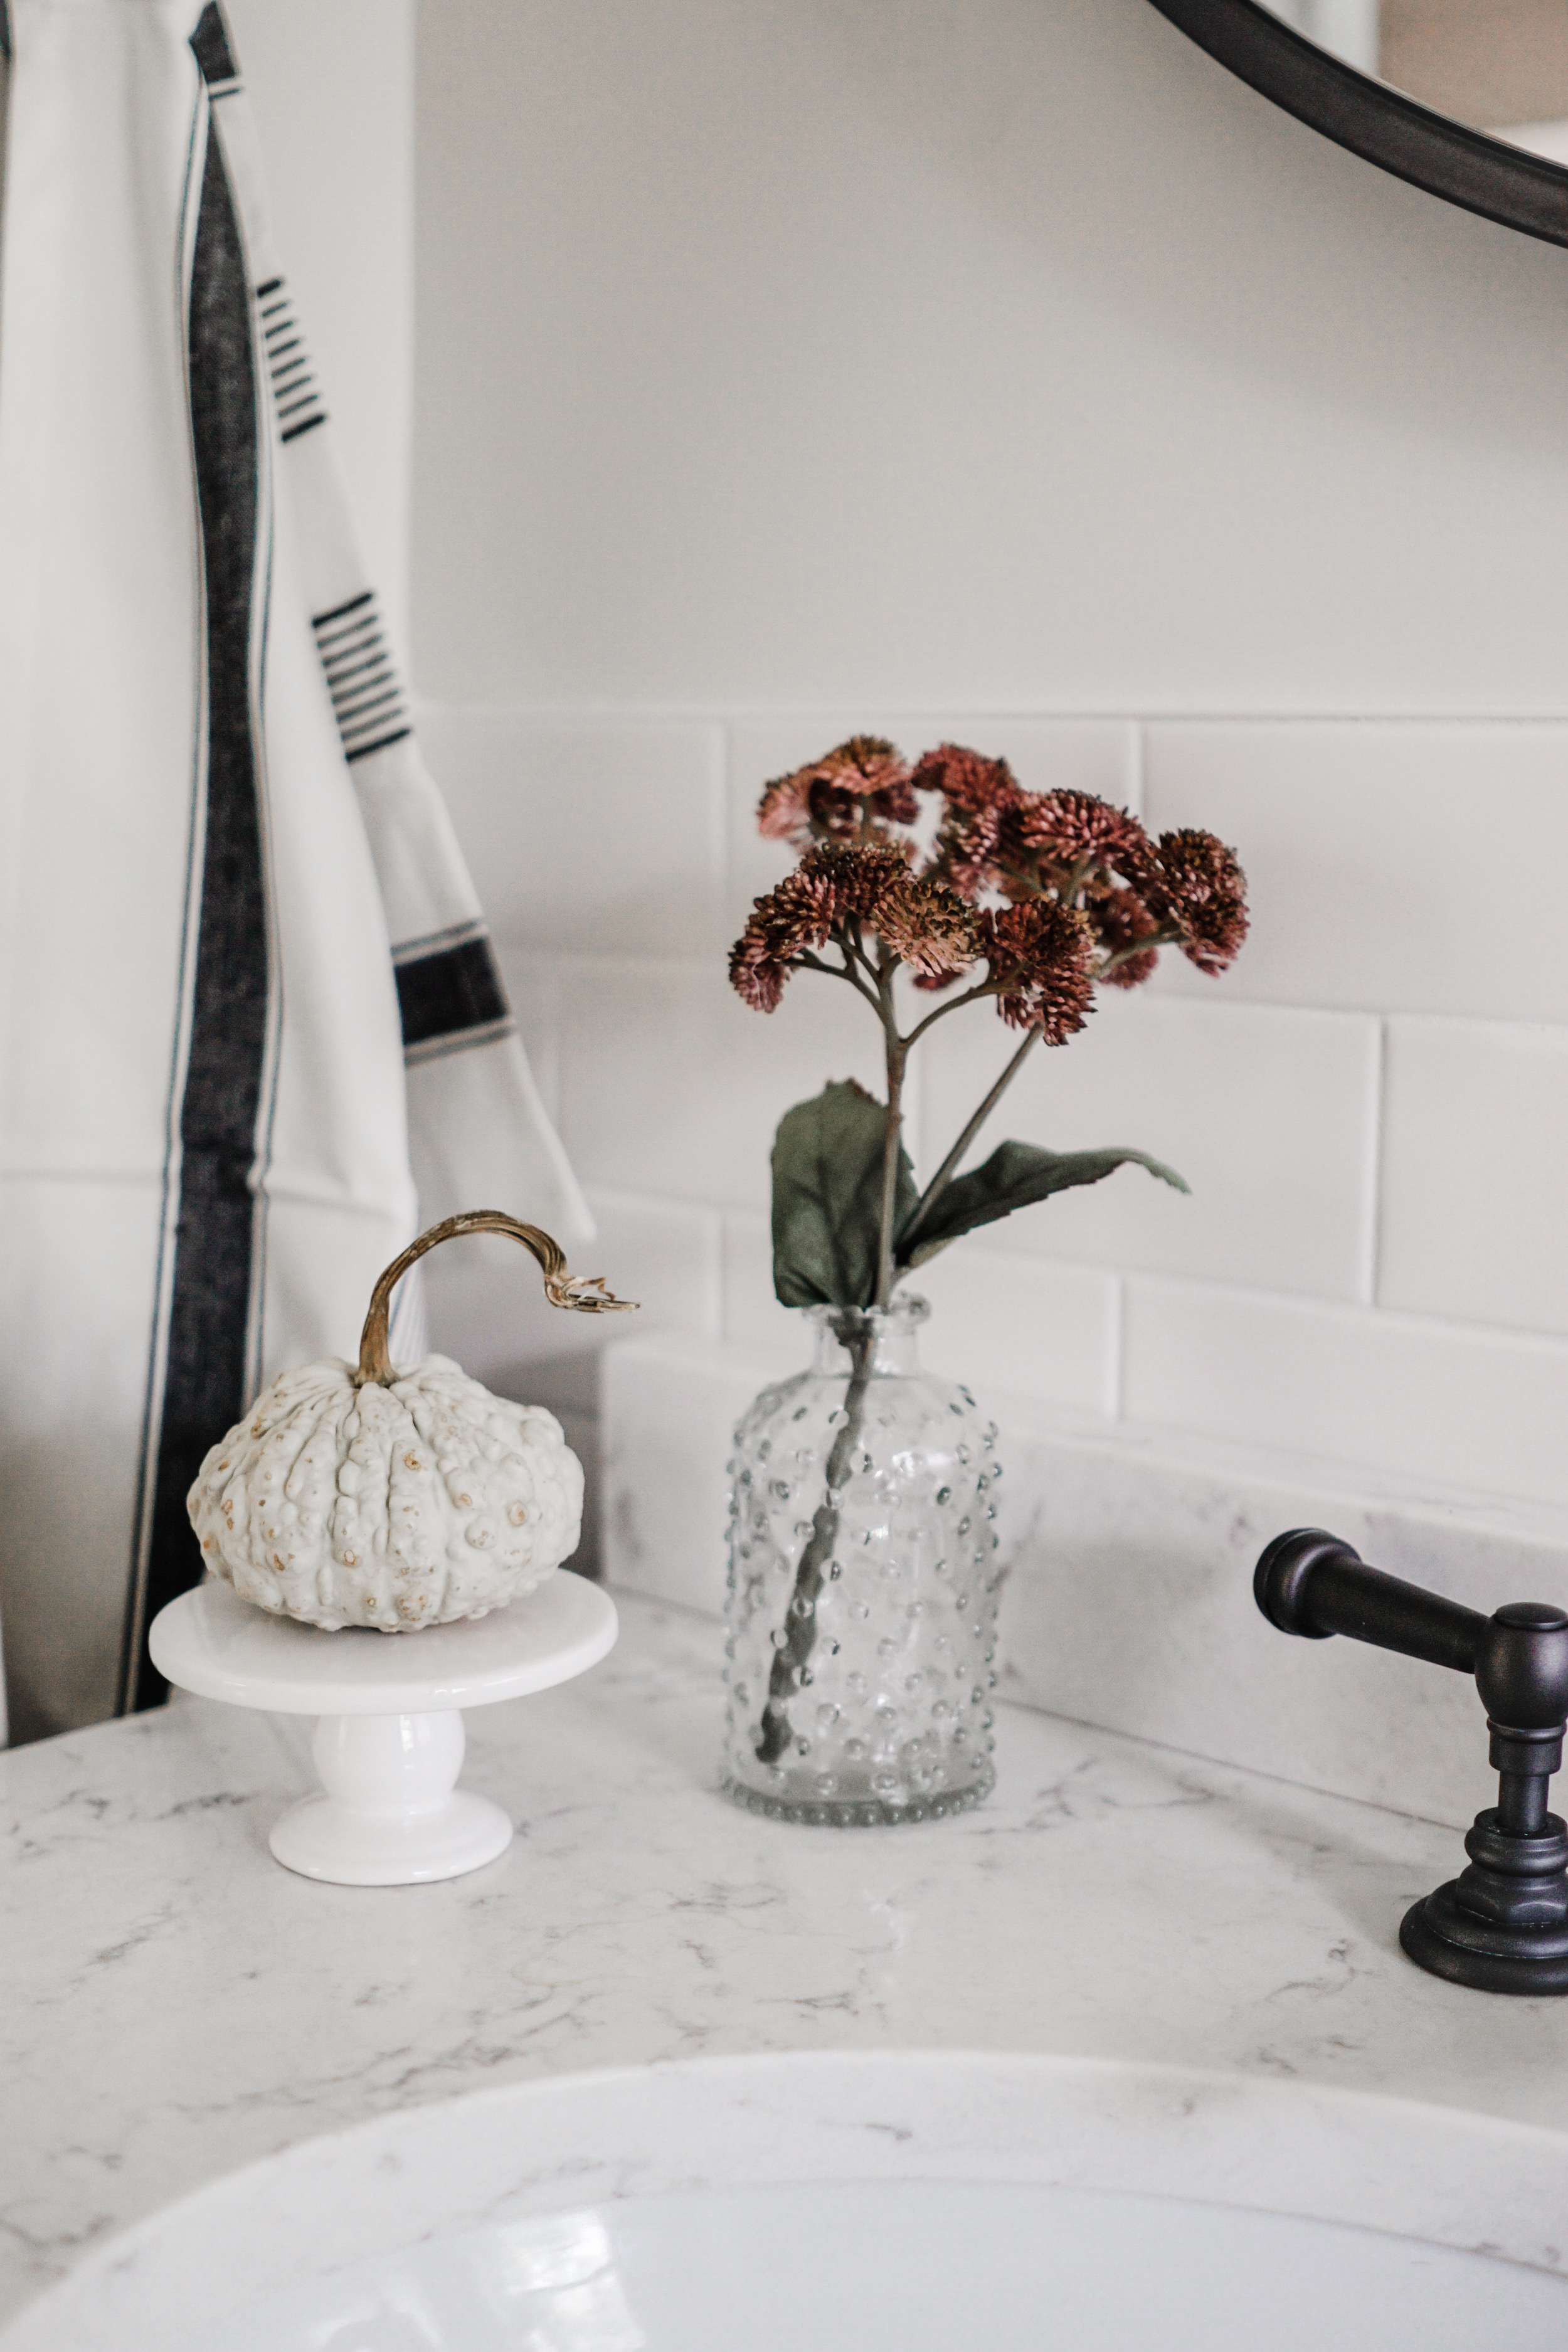 fall decor inspiration - add faux floral for a lil pop of color plus a pumpkin pedestal for fall vibes // fall bathroom decor idea